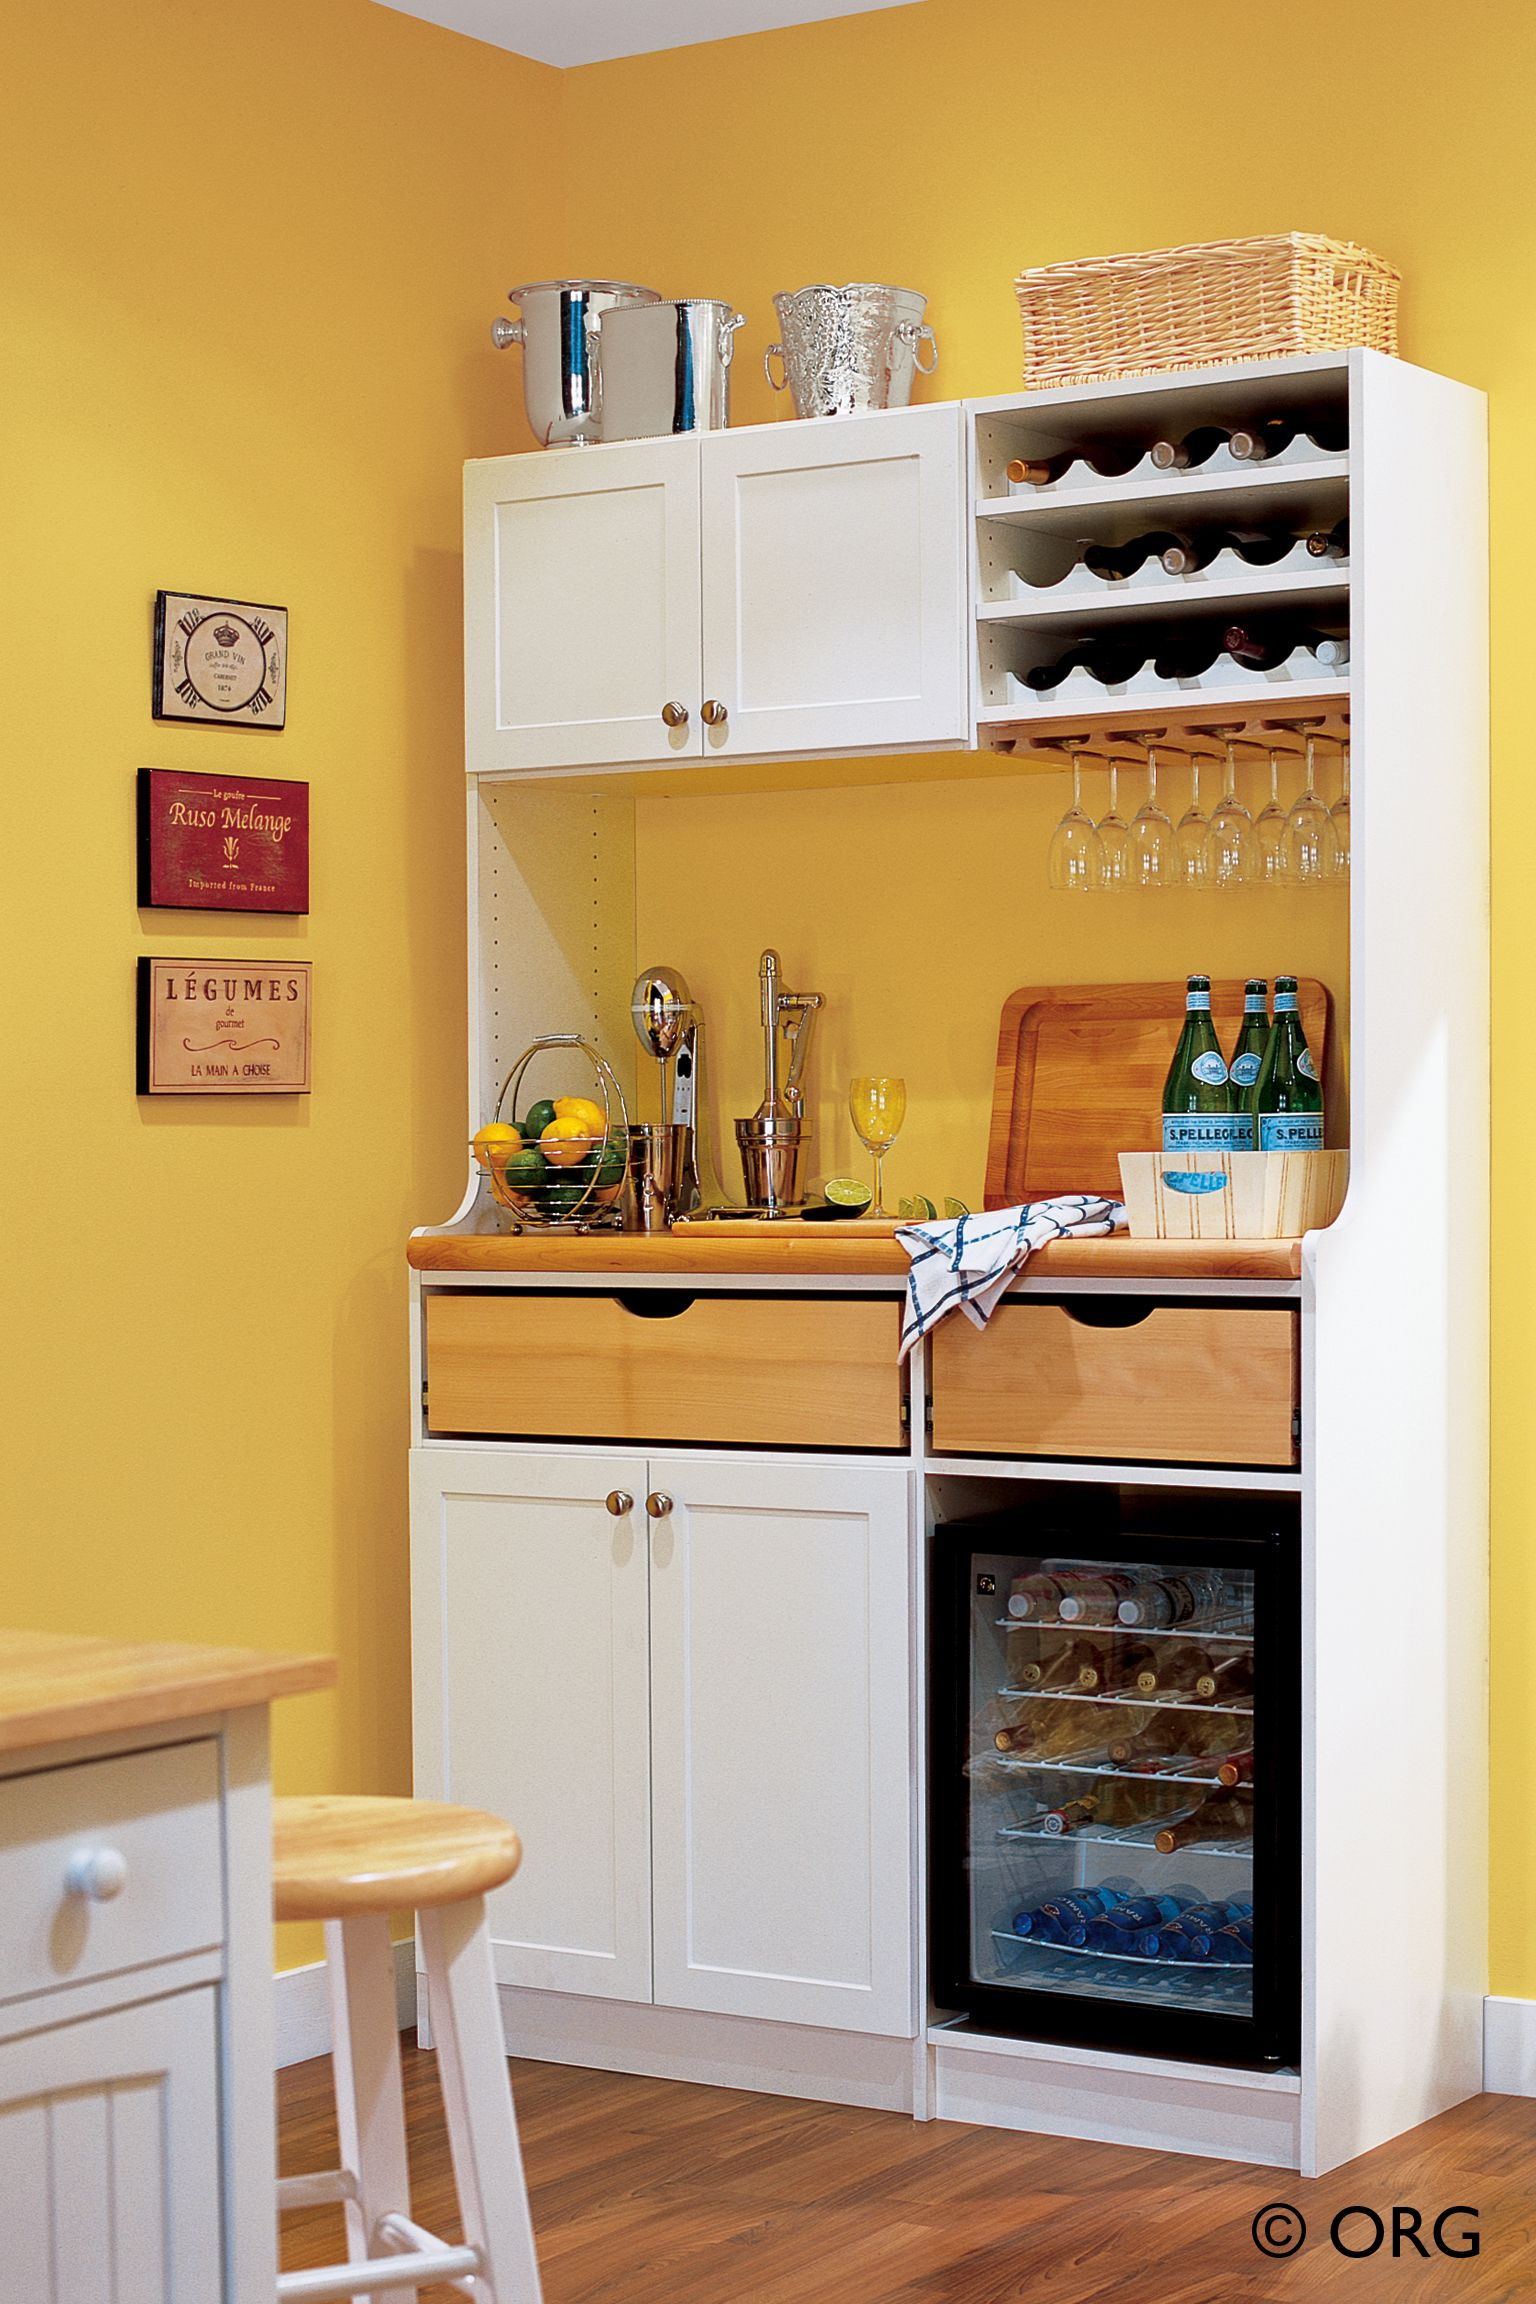 Effective management of the small kitchen   storage cabinet